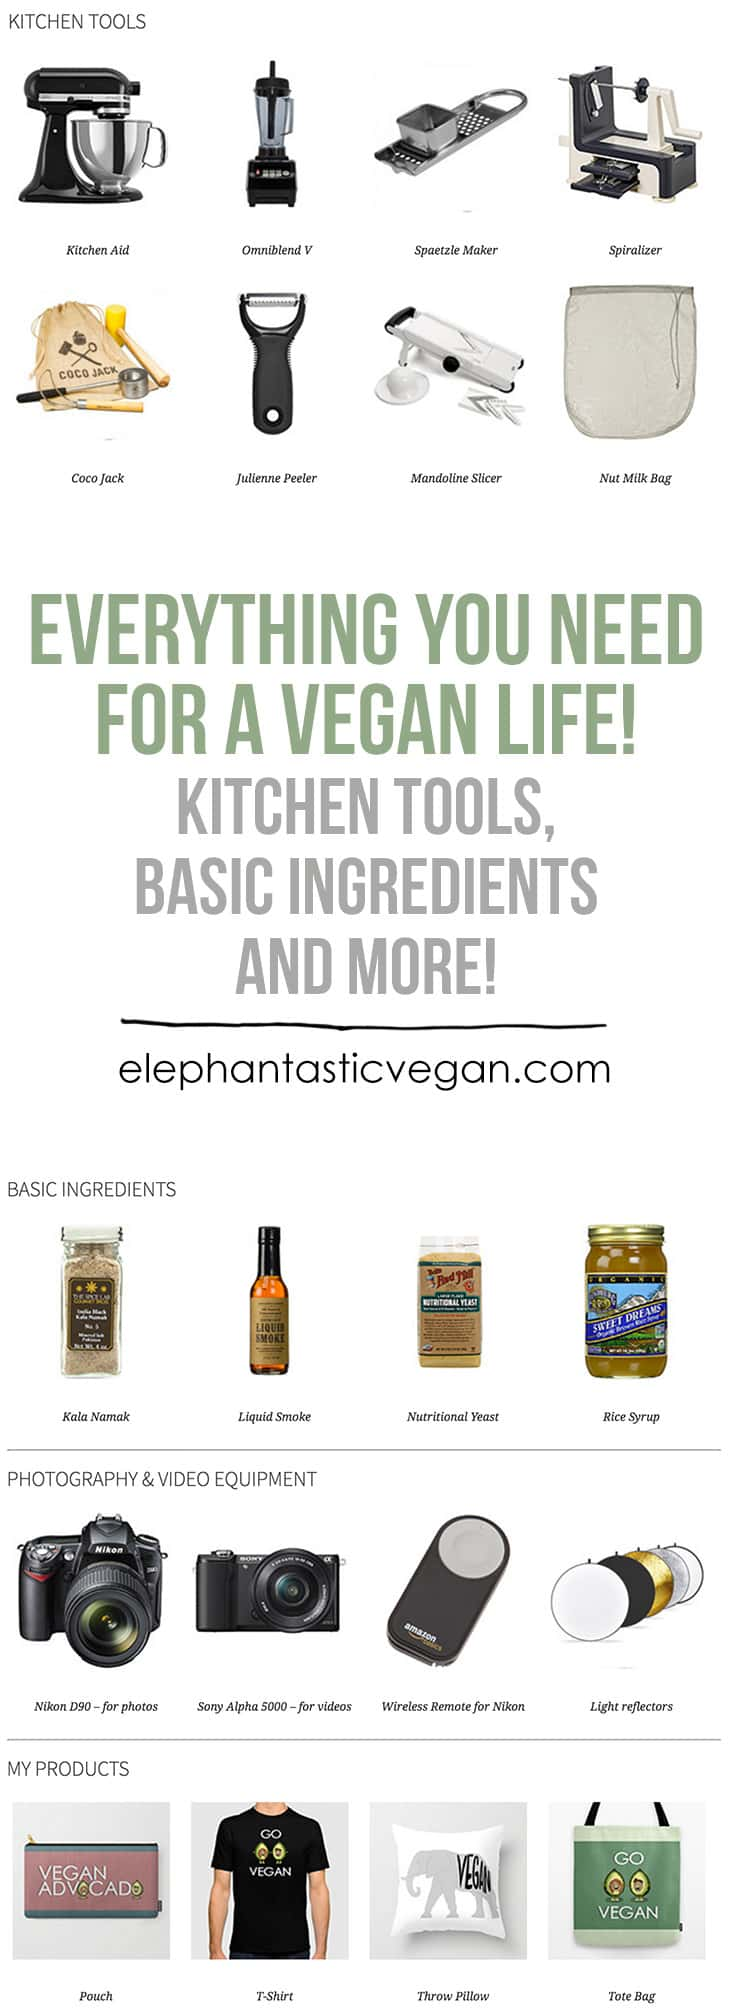 Everything a vegan needs - Shop | ElephantasticVegan.com